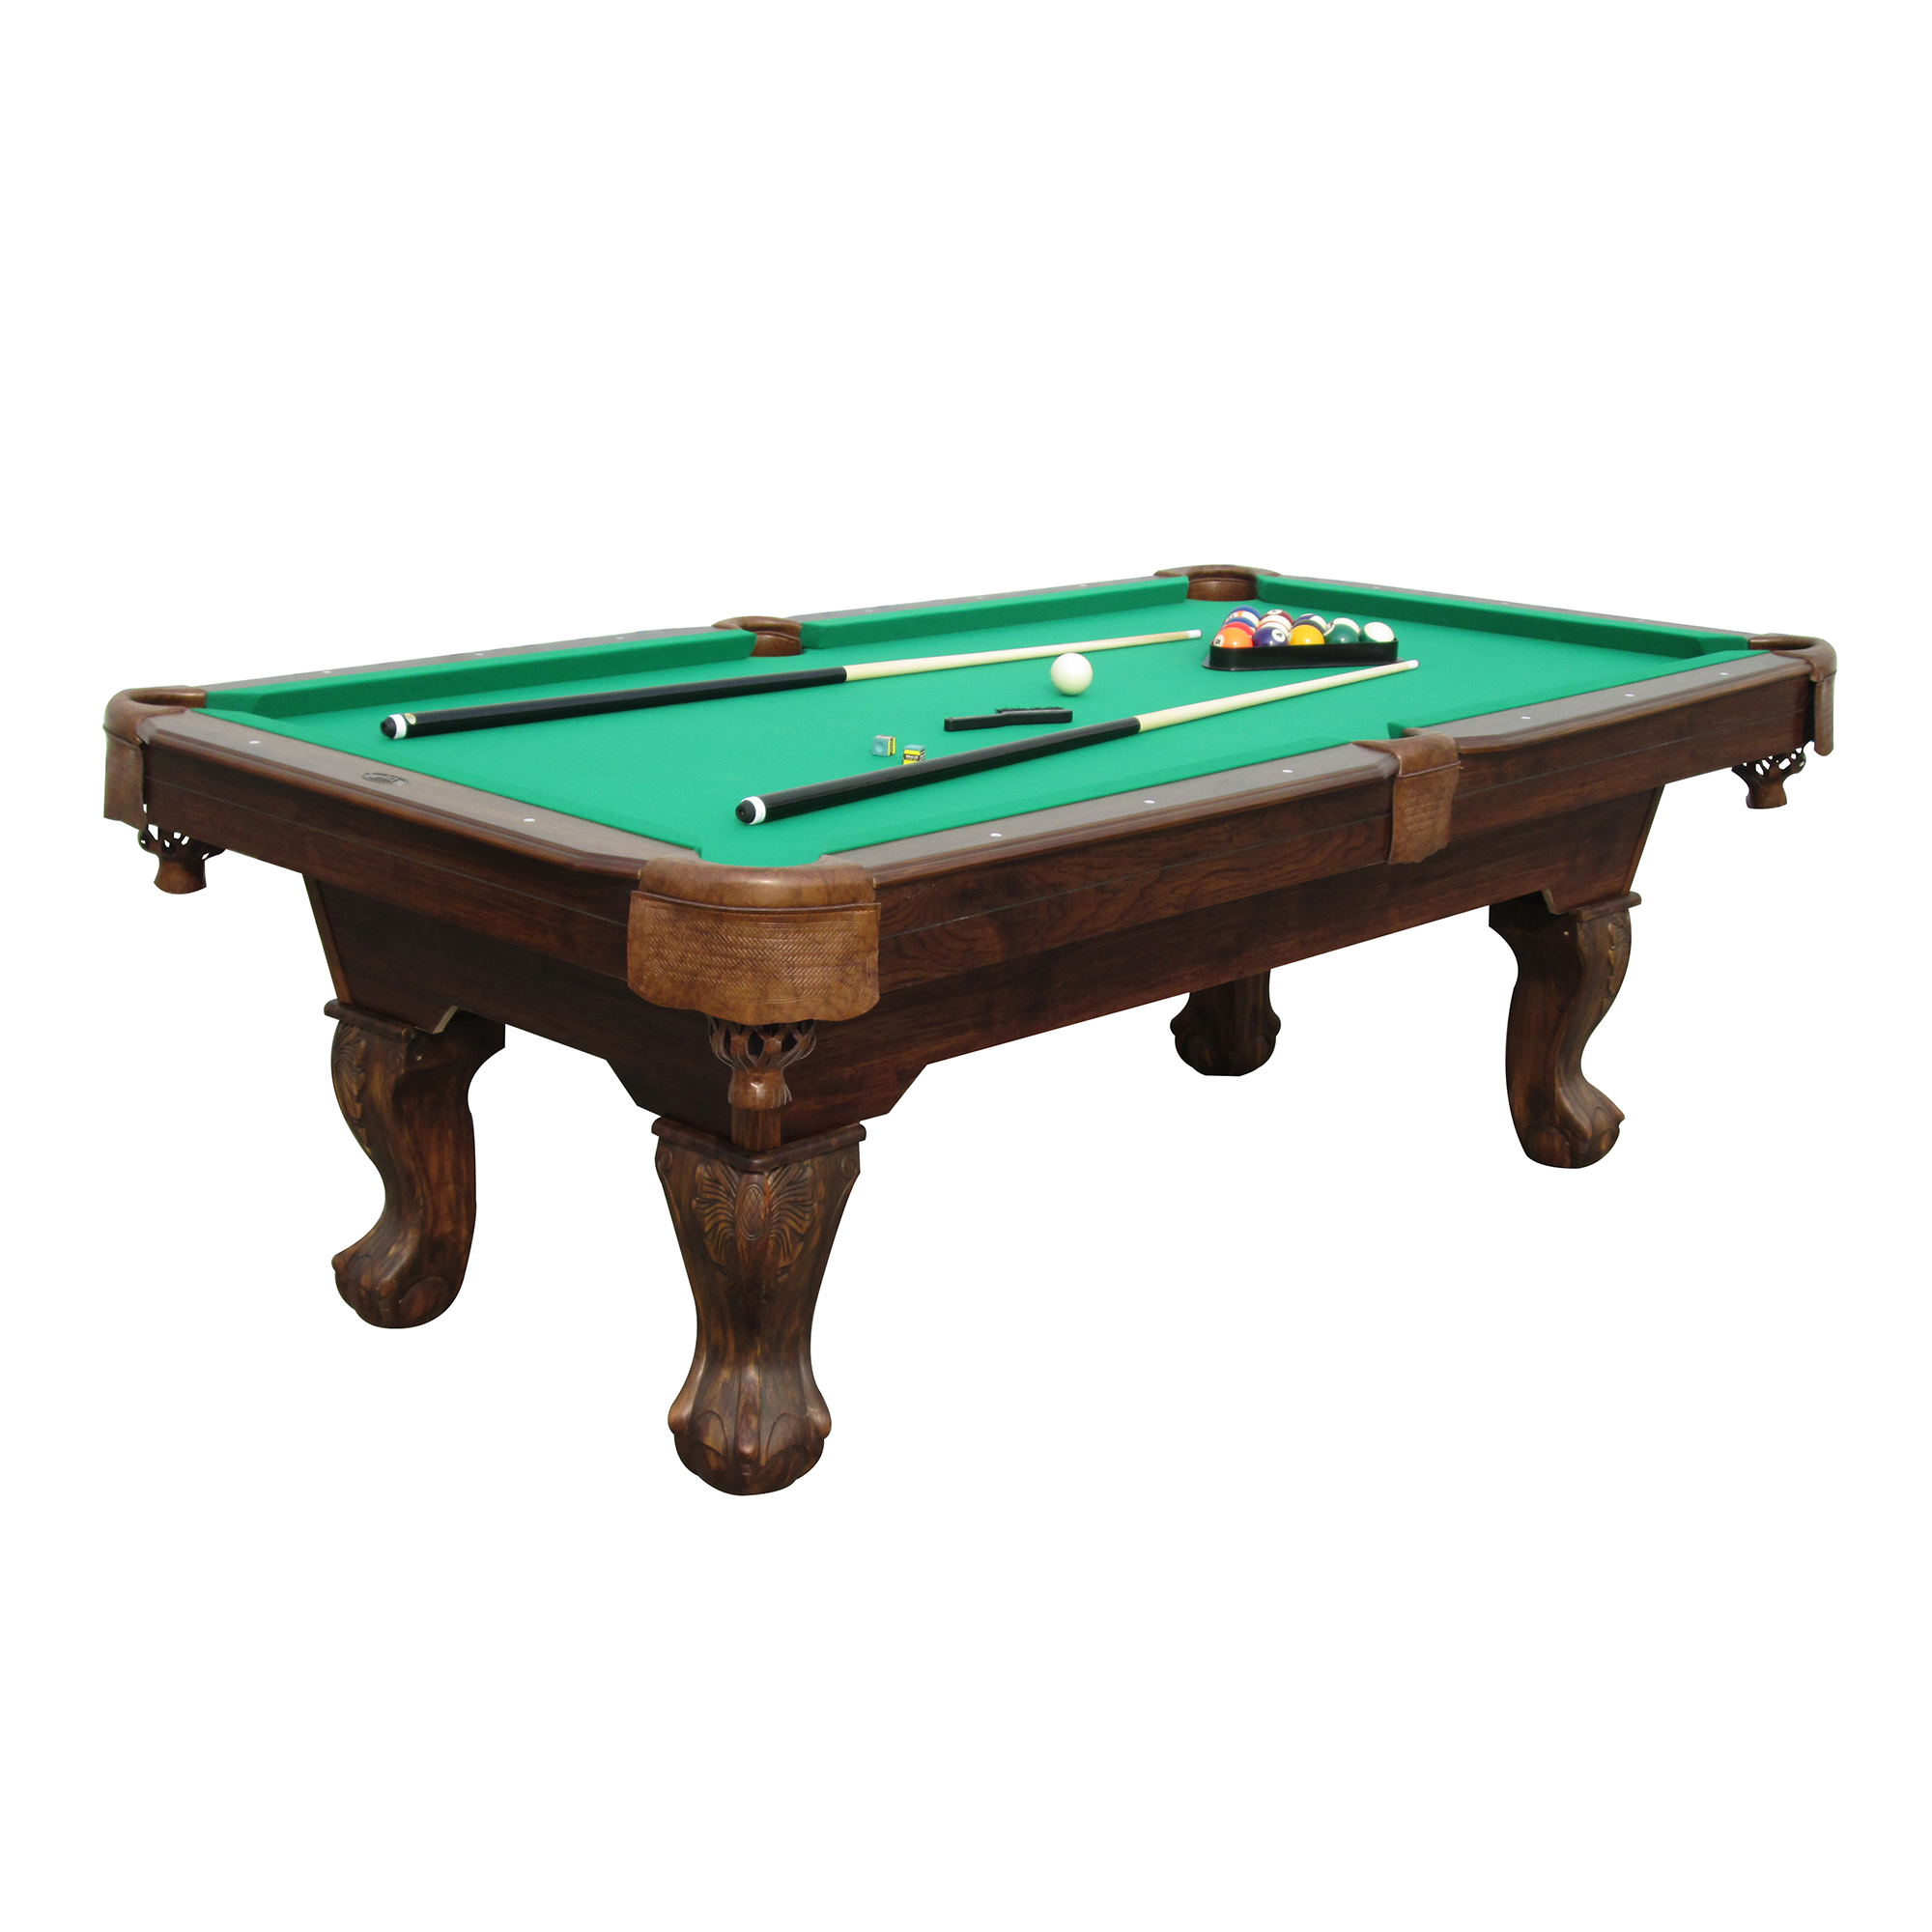 Sportcraft 7 5 39 ball and claw billiard pool table with cue rack and ac - Billiard table accessories ...